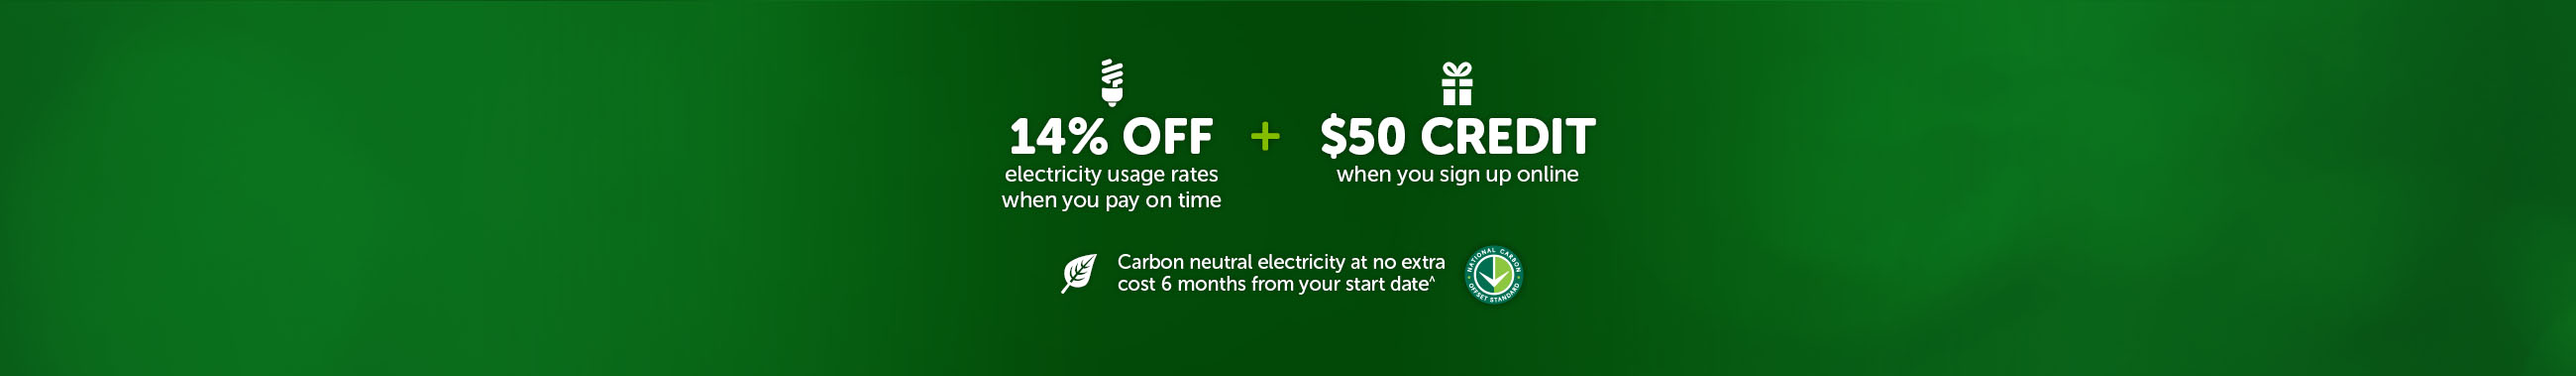 14% off electricity usage rates when you pay on time plus $50 credit when you sign up online and Carbon neutral electricity at no extra cost 6 months from your start date^